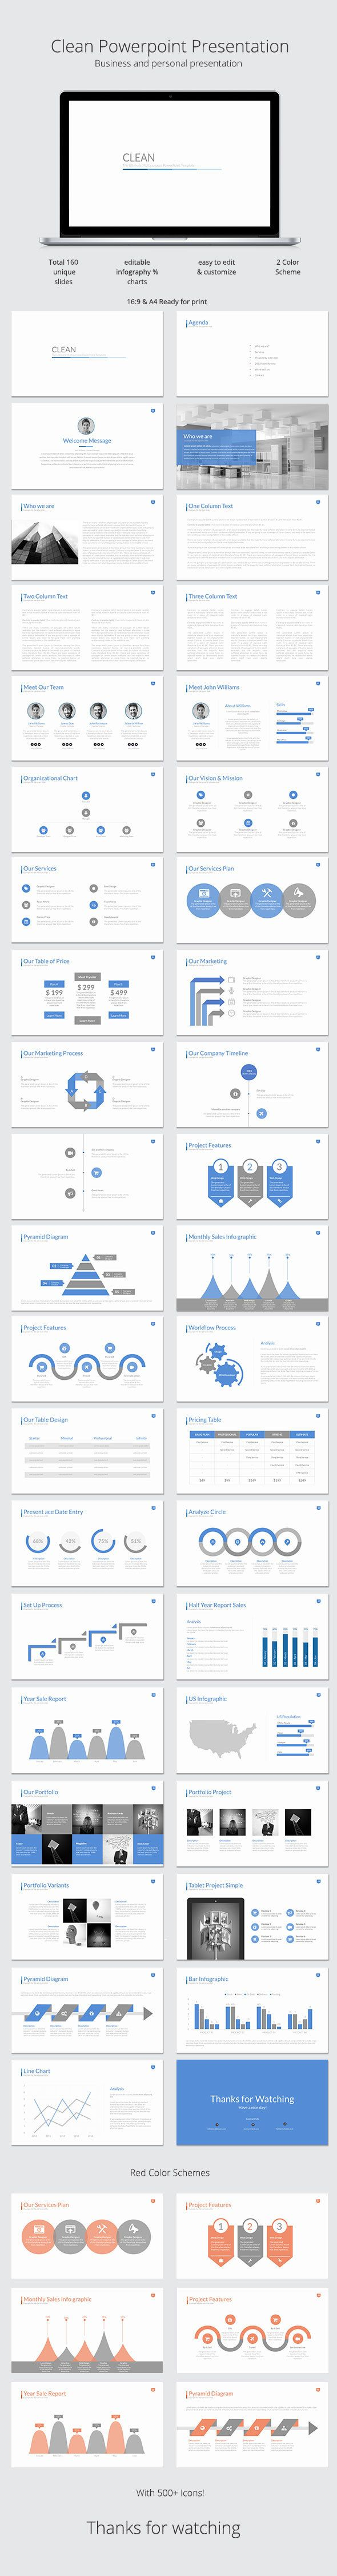 Coolmathgamesus  Seductive  Ideas About Powerpoint Presentations On Pinterest With Excellent Clean Powerpoint Template With Agreeable Powerpoint Francais Also Inserting Flash Into Powerpoint In Addition Wants And Needs Powerpoint And Sunday School Powerpoint As Well As How To Install Powerpoint  Additionally Of Mice And Men Powerpoints From Pinterestcom With Coolmathgamesus  Excellent  Ideas About Powerpoint Presentations On Pinterest With Agreeable Clean Powerpoint Template And Seductive Powerpoint Francais Also Inserting Flash Into Powerpoint In Addition Wants And Needs Powerpoint From Pinterestcom